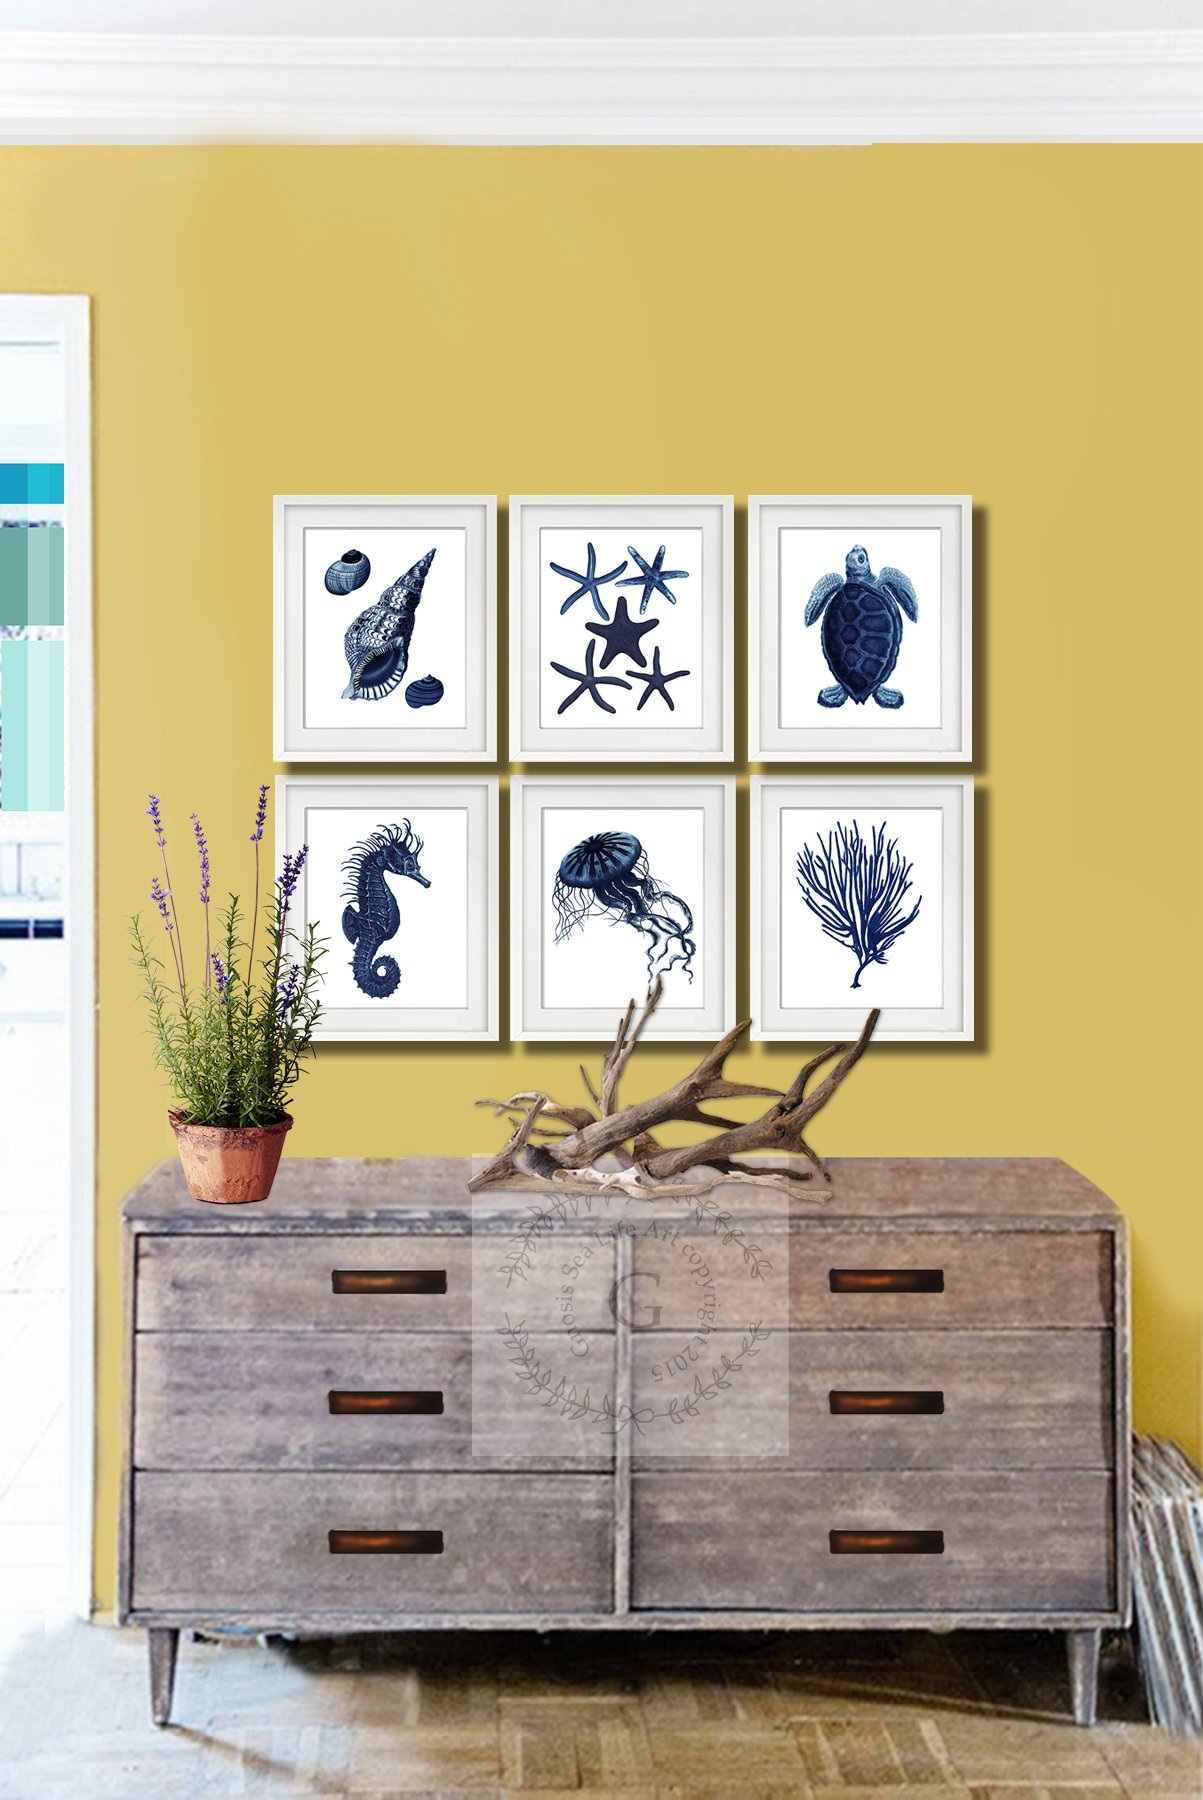 Dark Navy Blue Beach Wall Art Decor Set of 6 Unframed Prints Beach ...